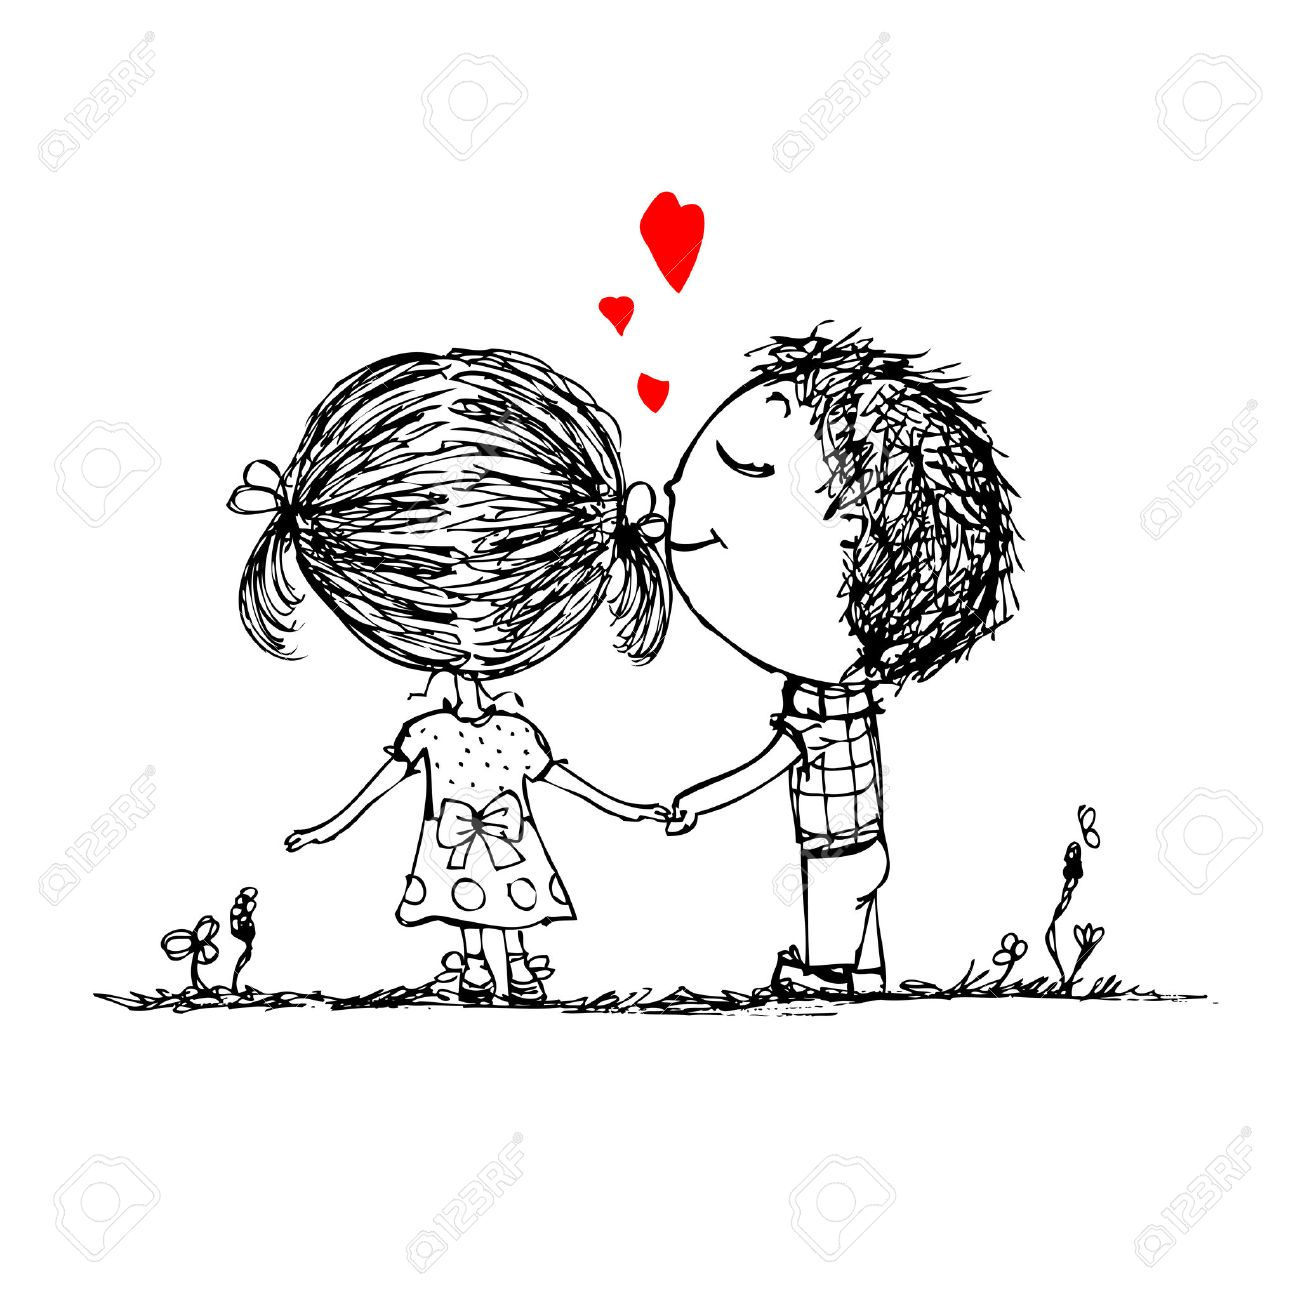 Couple in love together, valentine sketch for your design Stock Vector - 27321761